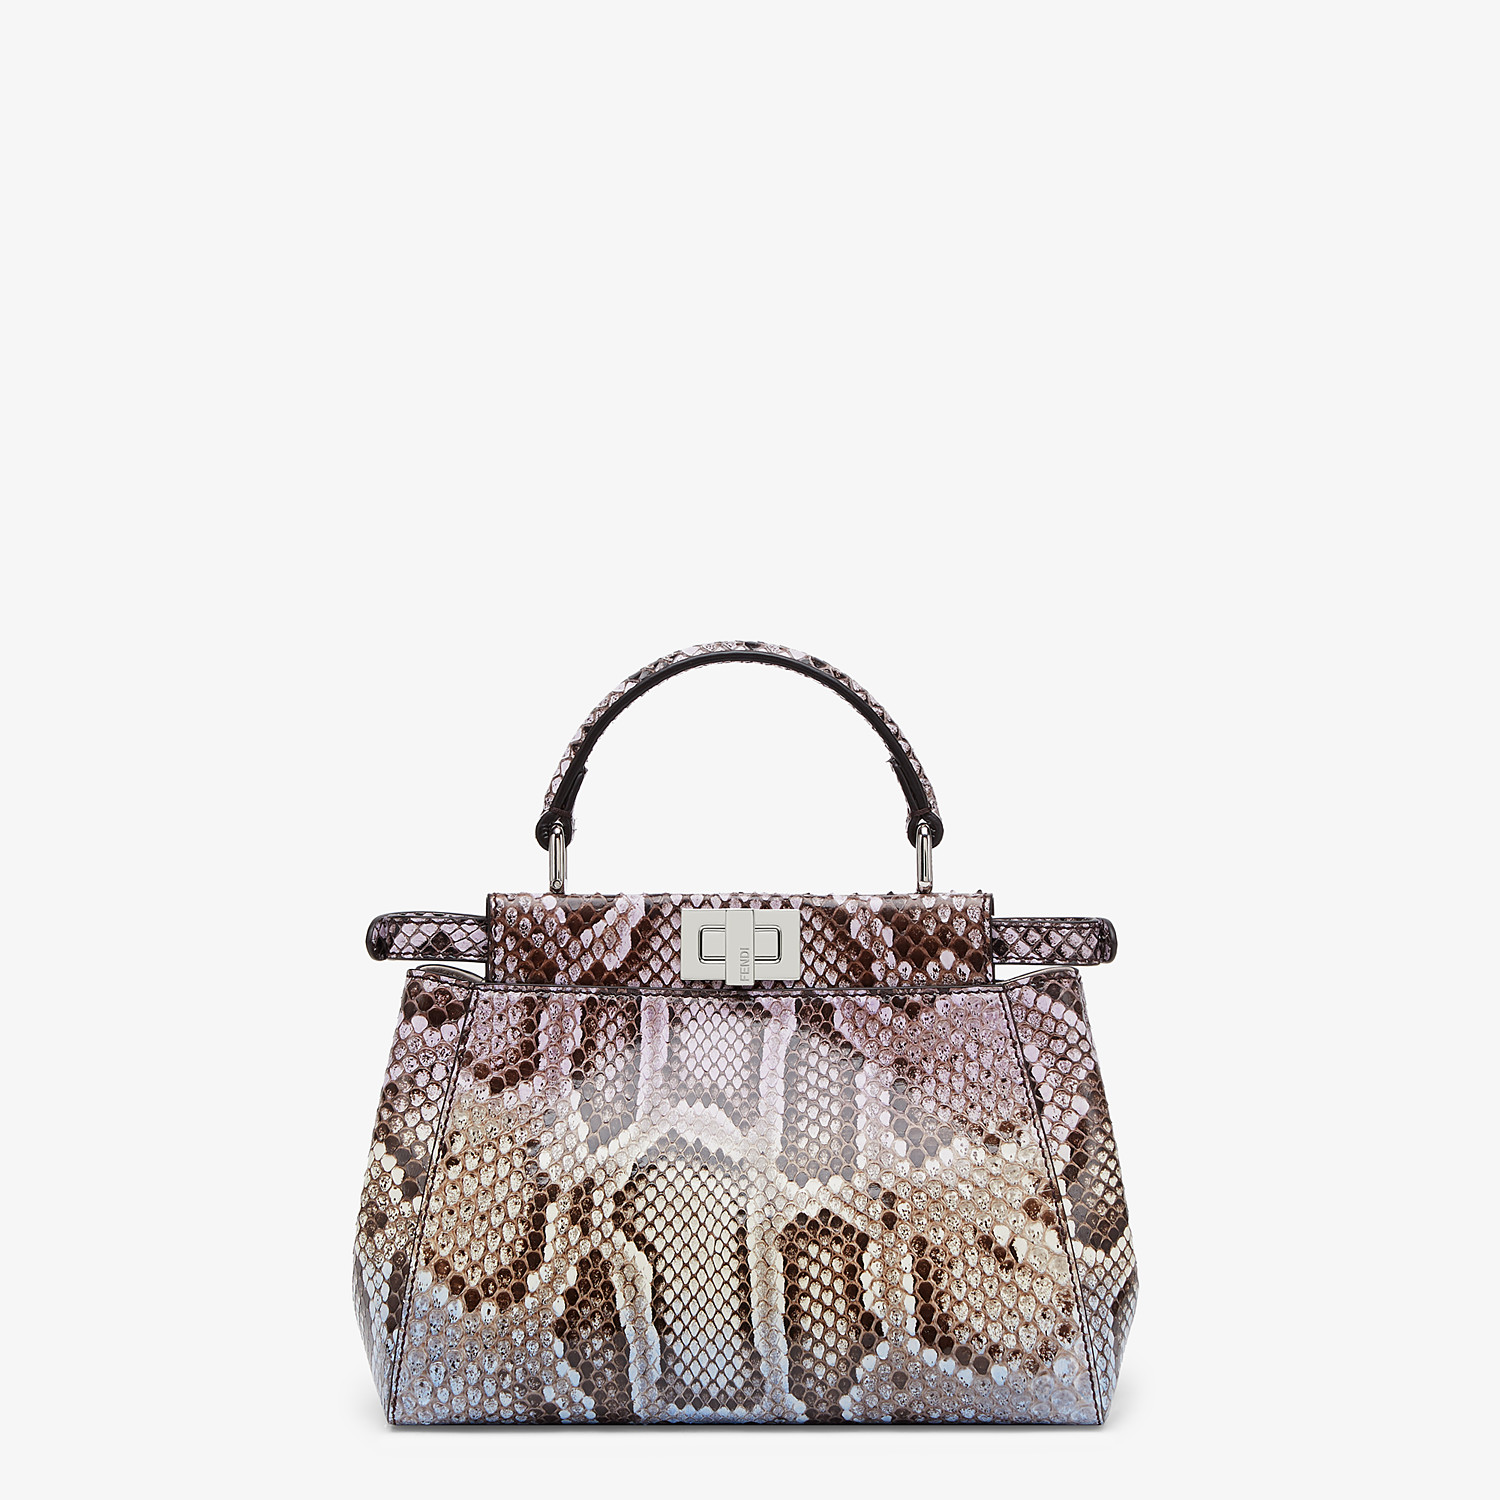 FENDI PEEKABOO ICONIC MINI - Python leather bag with graduated colors - view 3 detail